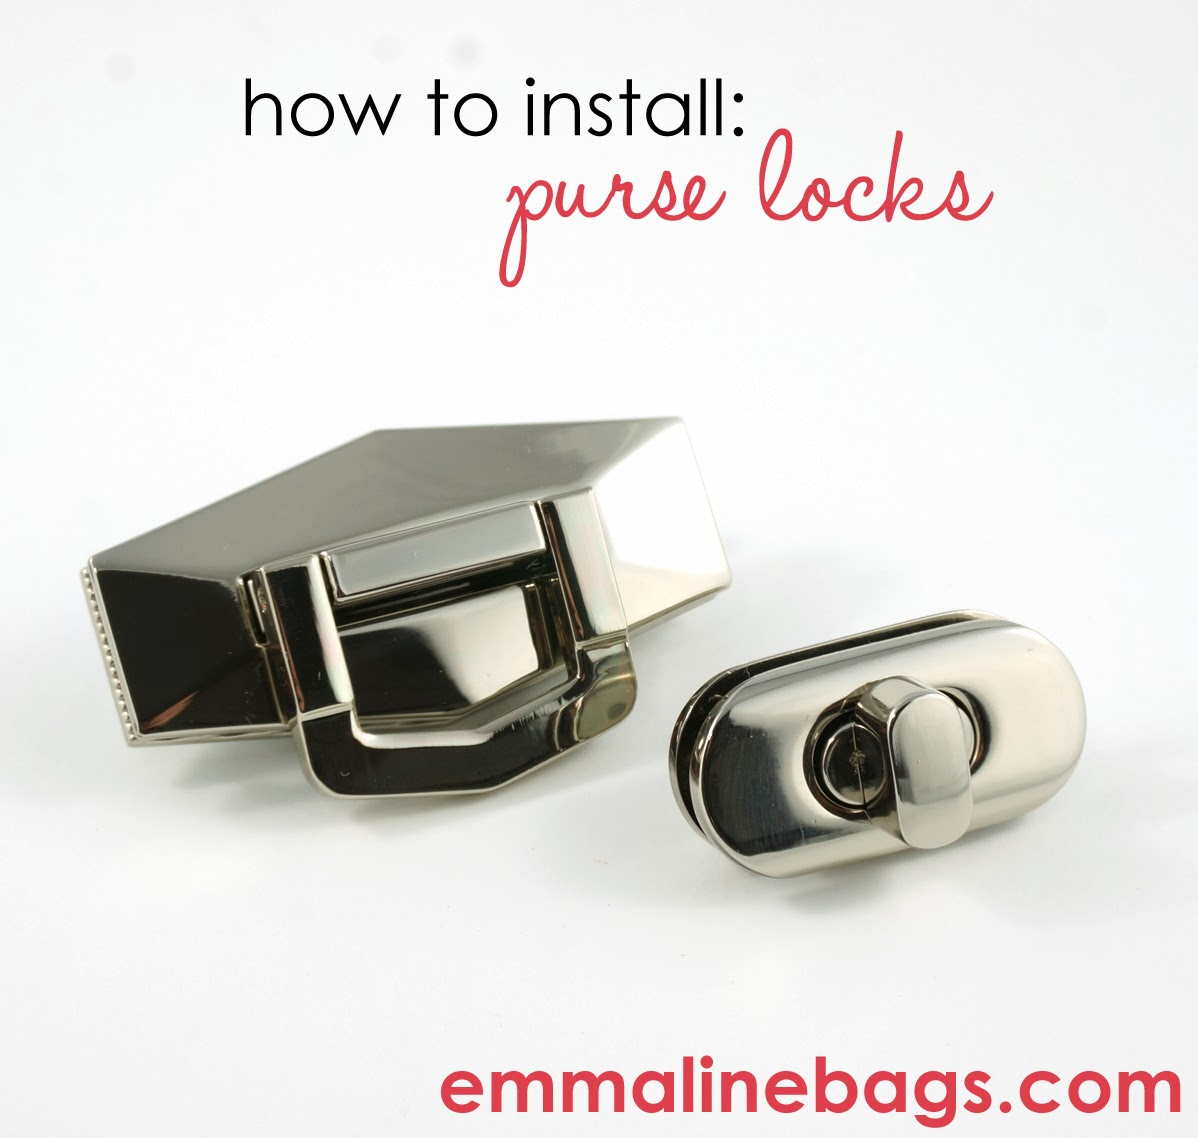 Would You Like To Install A Gorgeous Lock On Your Wallet Bag Satchel Etc But Are Not Sure How Here Some Simple Instructions That I Hope Will Help